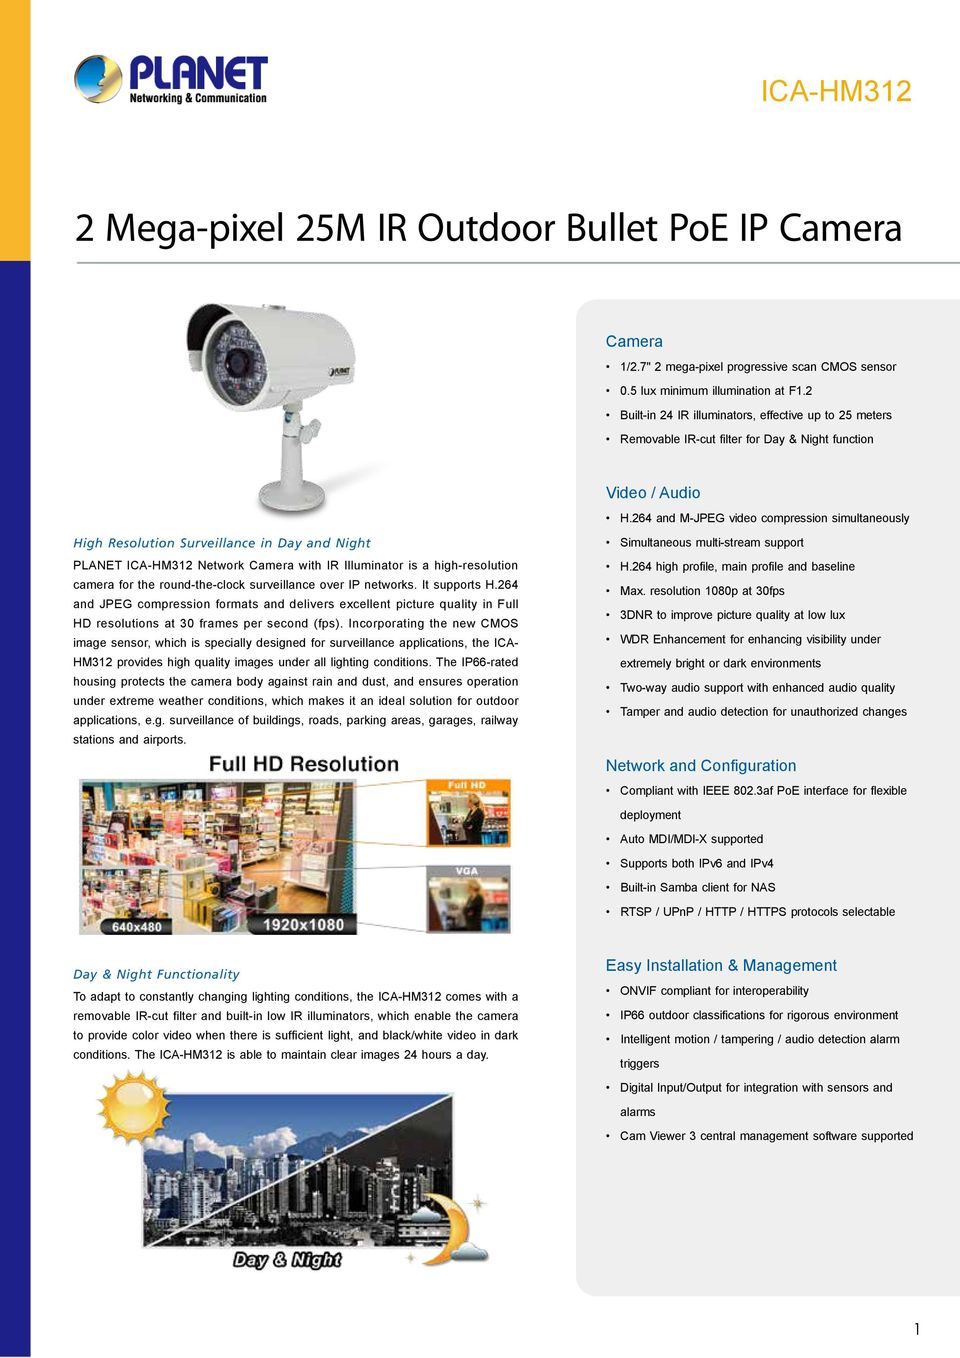 high-resolution camera for the round-the-clock surveillance over IP networks. It supports H.